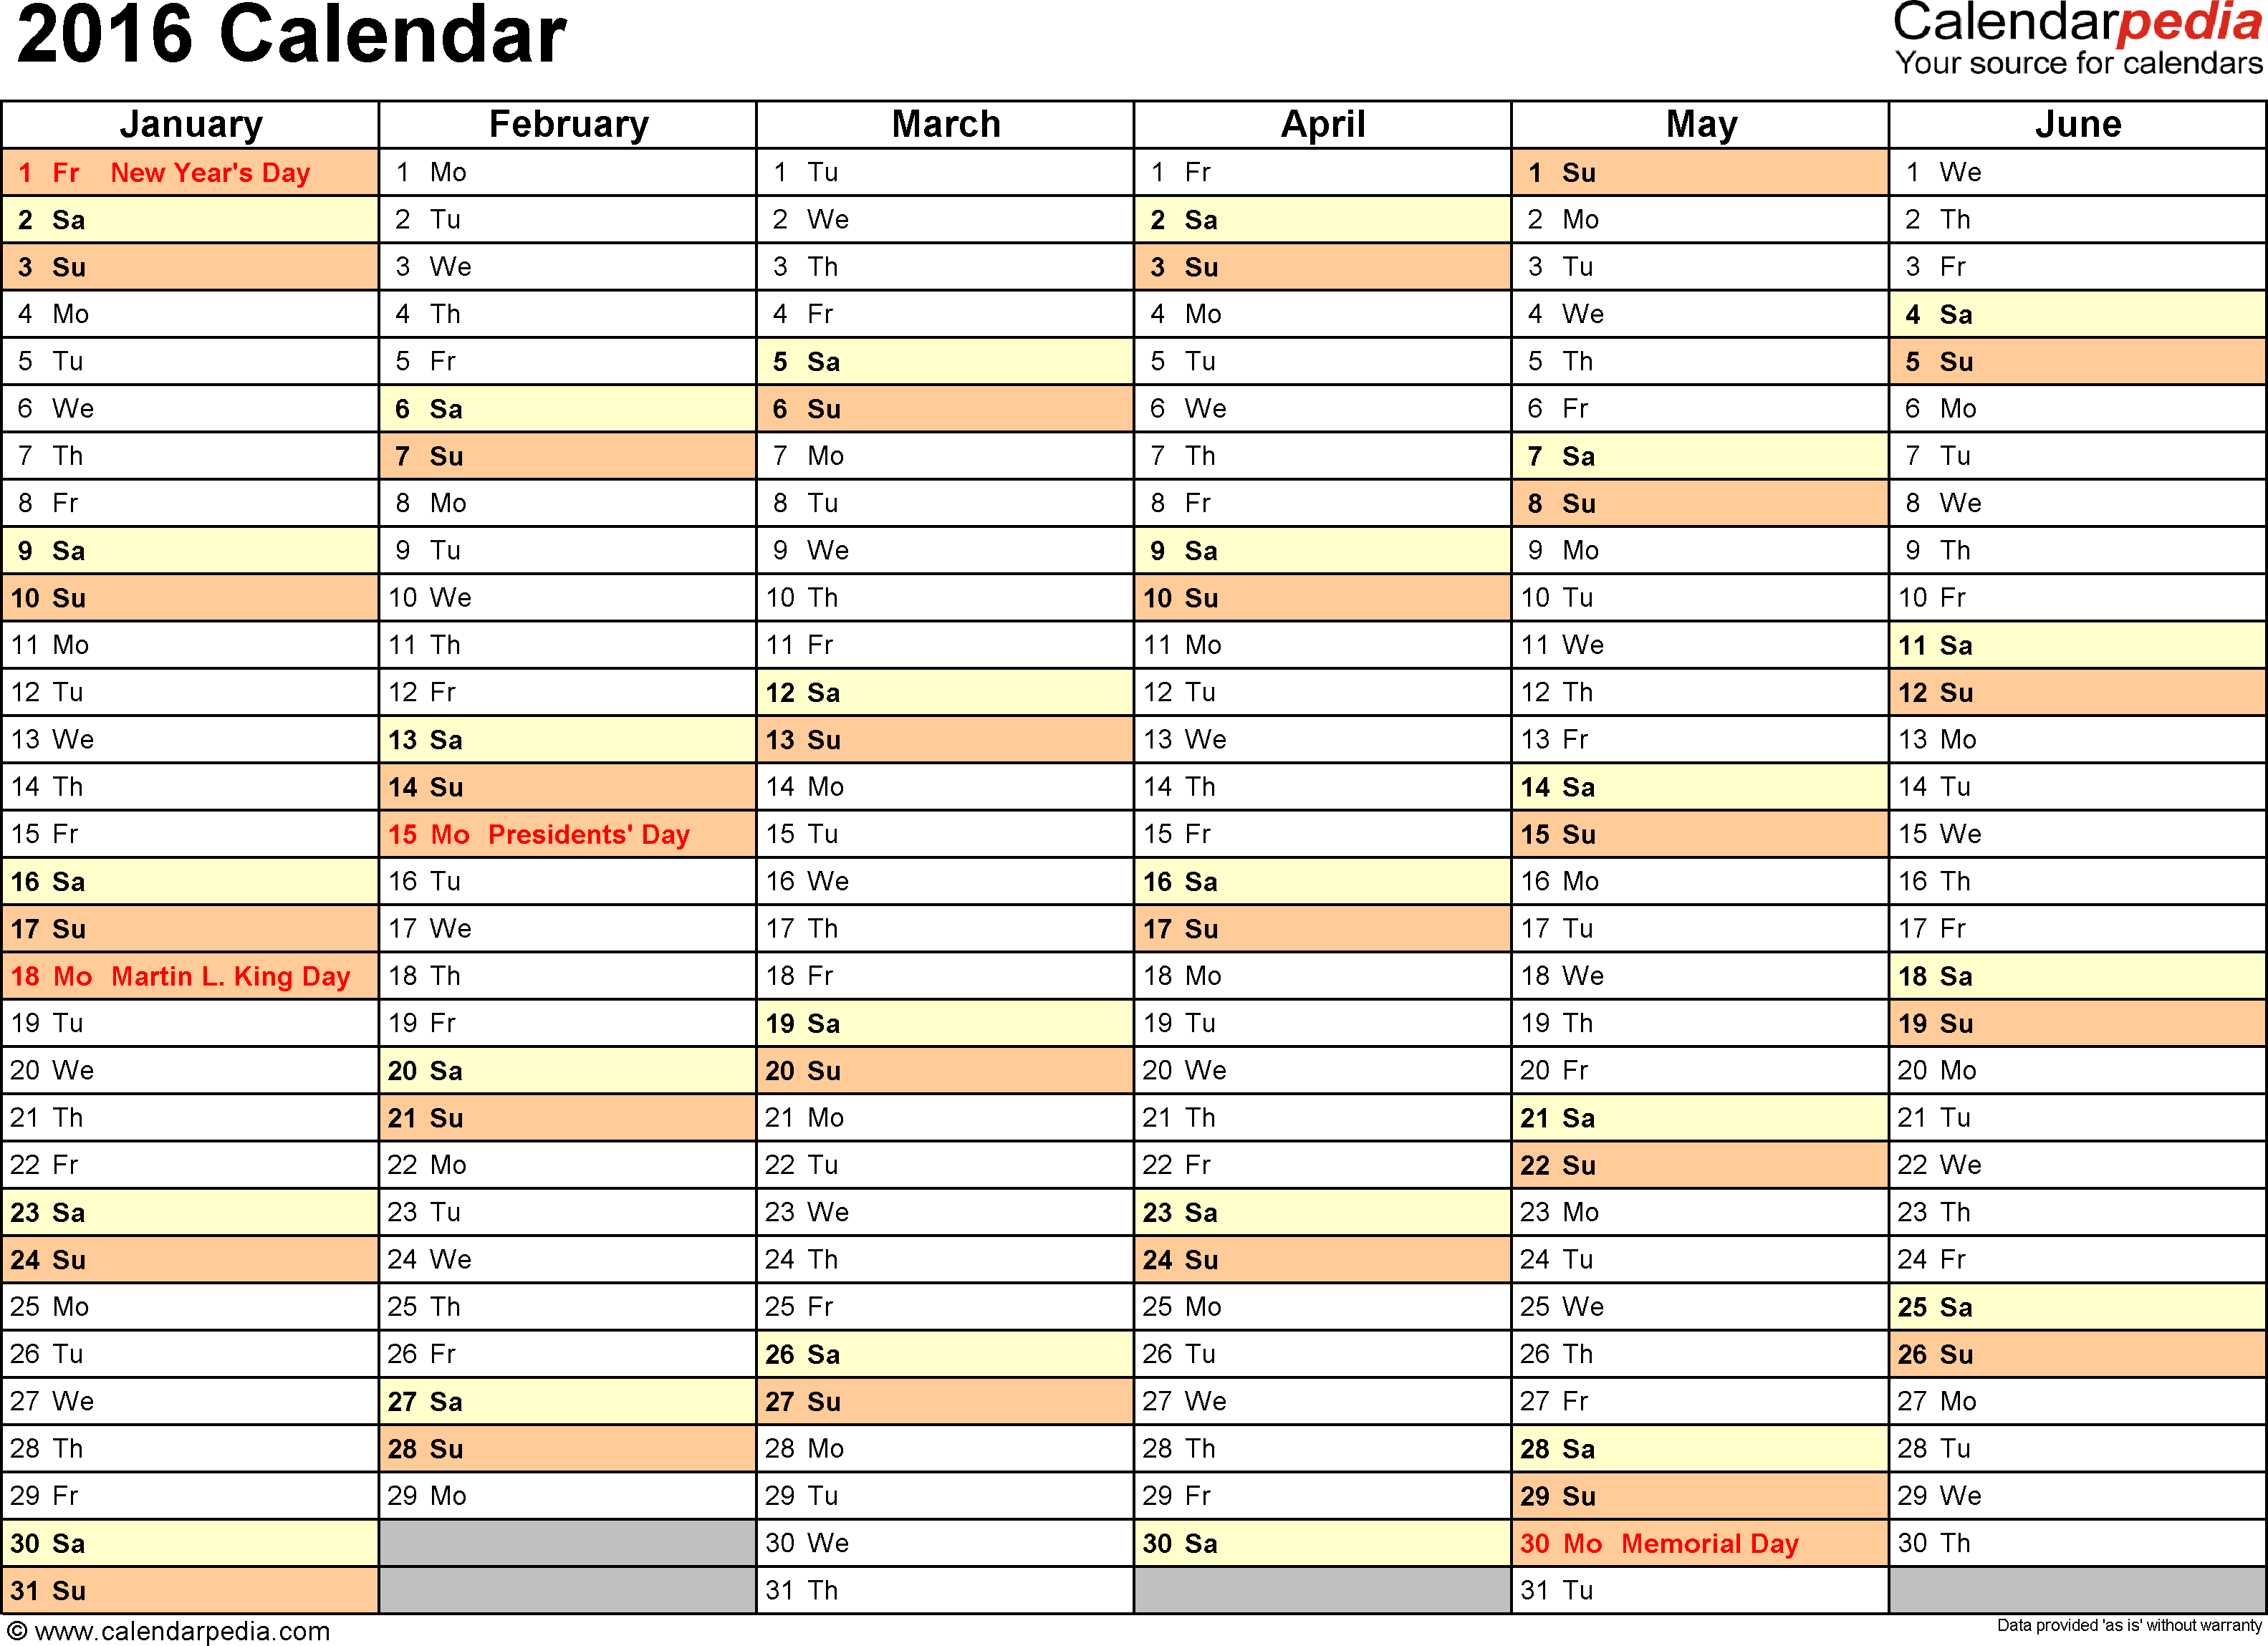 Ediblewildsus  Unique  Calendar  Download  Free Printable Excel Templates Xls With Outstanding Template   Calendar For Excel Months Horizontally  Pages Landscape Orientation With Extraordinary How Do I Show Formulas In Excel Also Ms Excel Invoice Template In Addition Excel  Charts And Excel Formula If Statement As Well As Ms Excel Powerpivot Additionally Net Worth Spreadsheet Excel From Calendarpediacom With Ediblewildsus  Outstanding  Calendar  Download  Free Printable Excel Templates Xls With Extraordinary Template   Calendar For Excel Months Horizontally  Pages Landscape Orientation And Unique How Do I Show Formulas In Excel Also Ms Excel Invoice Template In Addition Excel  Charts From Calendarpediacom